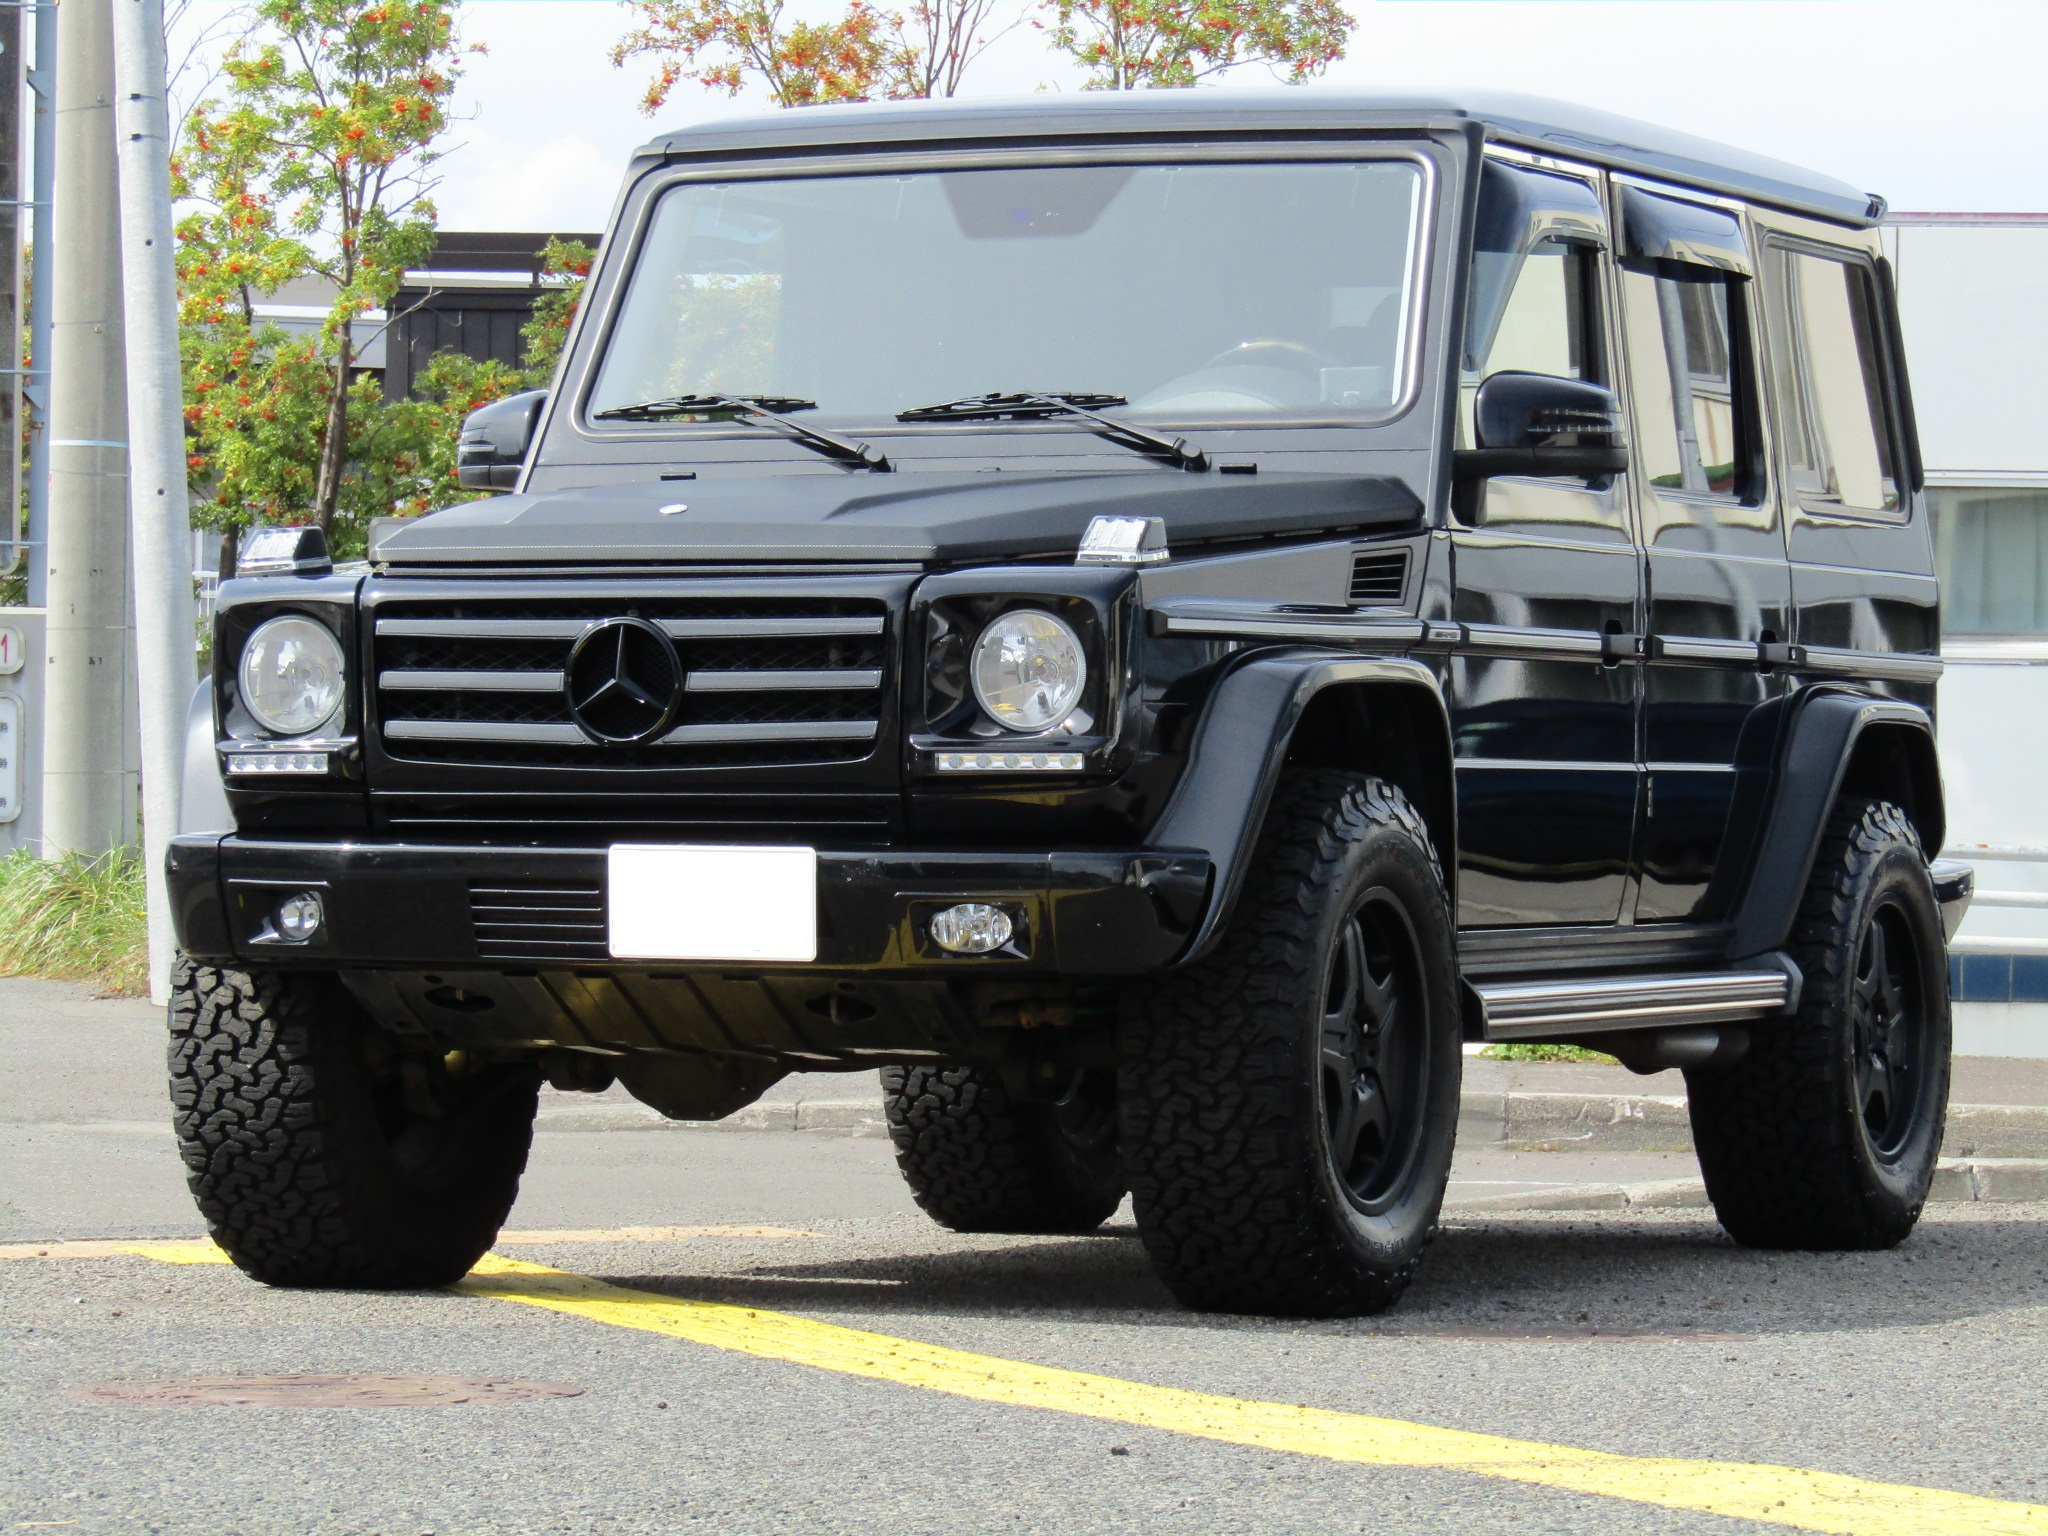 ★G55 AMG Supercharger★